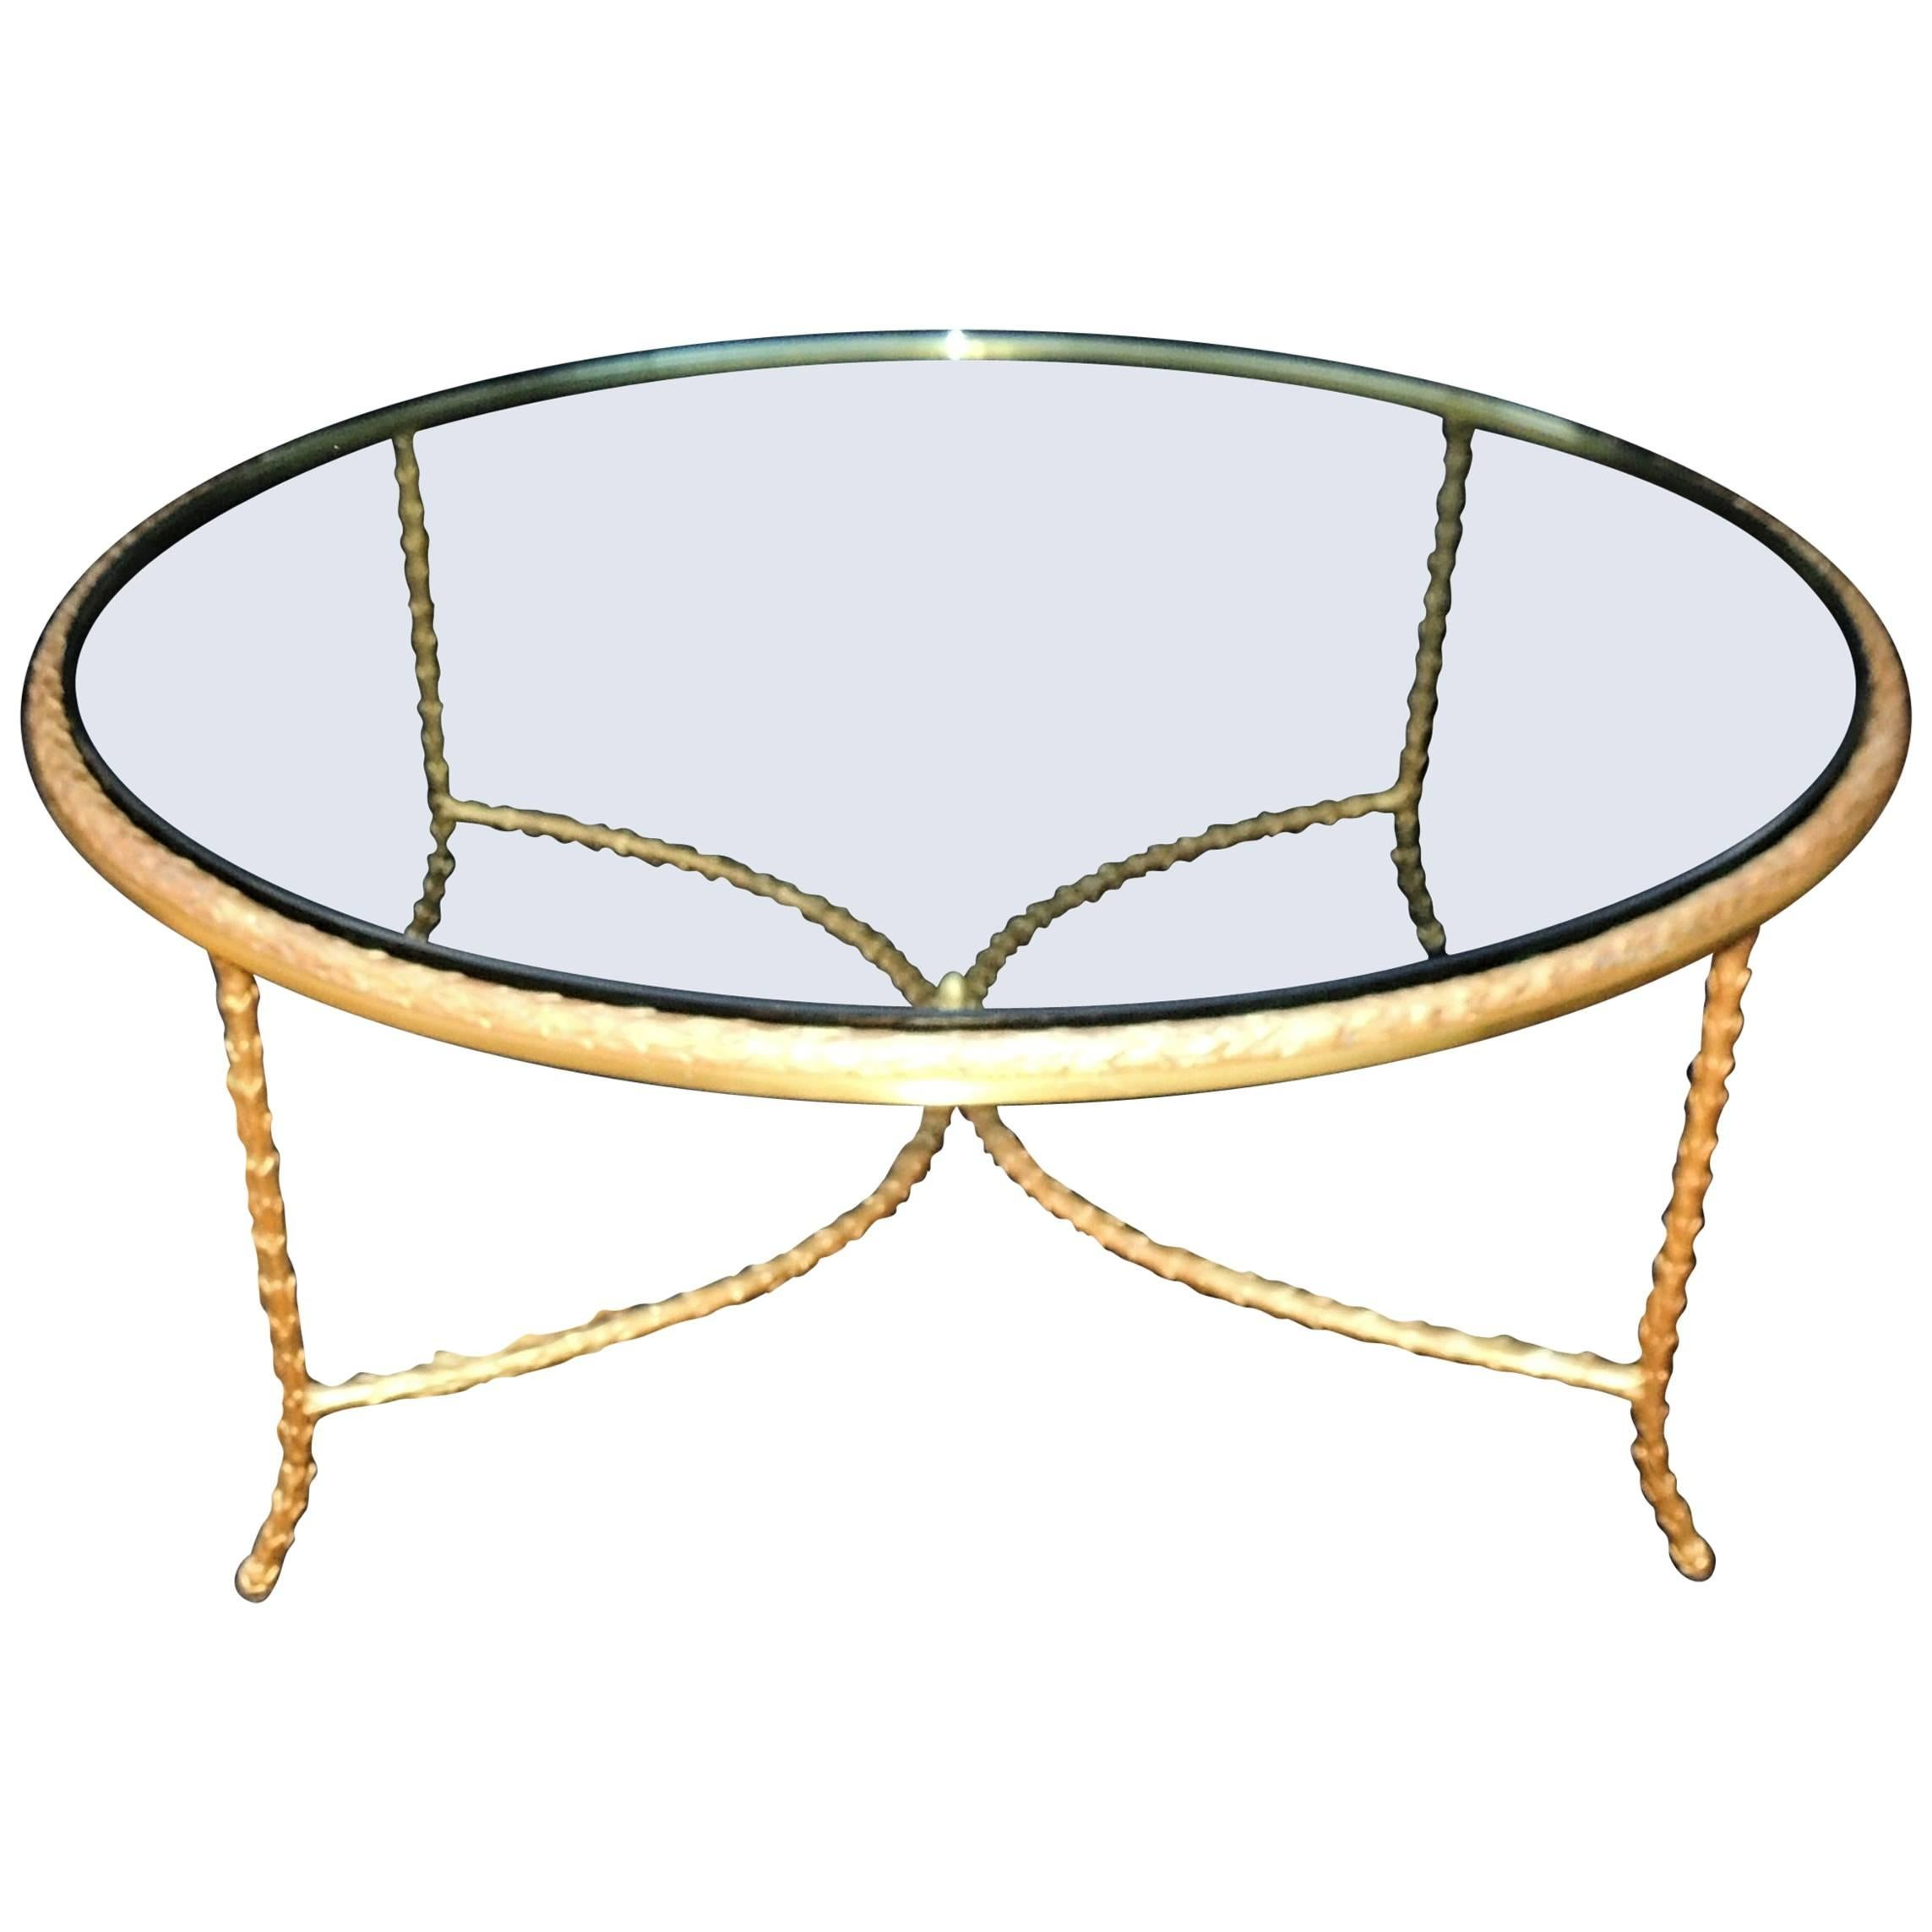 Superieur Wonderful French Gilt Bronze Leaf Round P.E. Guerin Glass Coffee Cocktail  Table For Sale